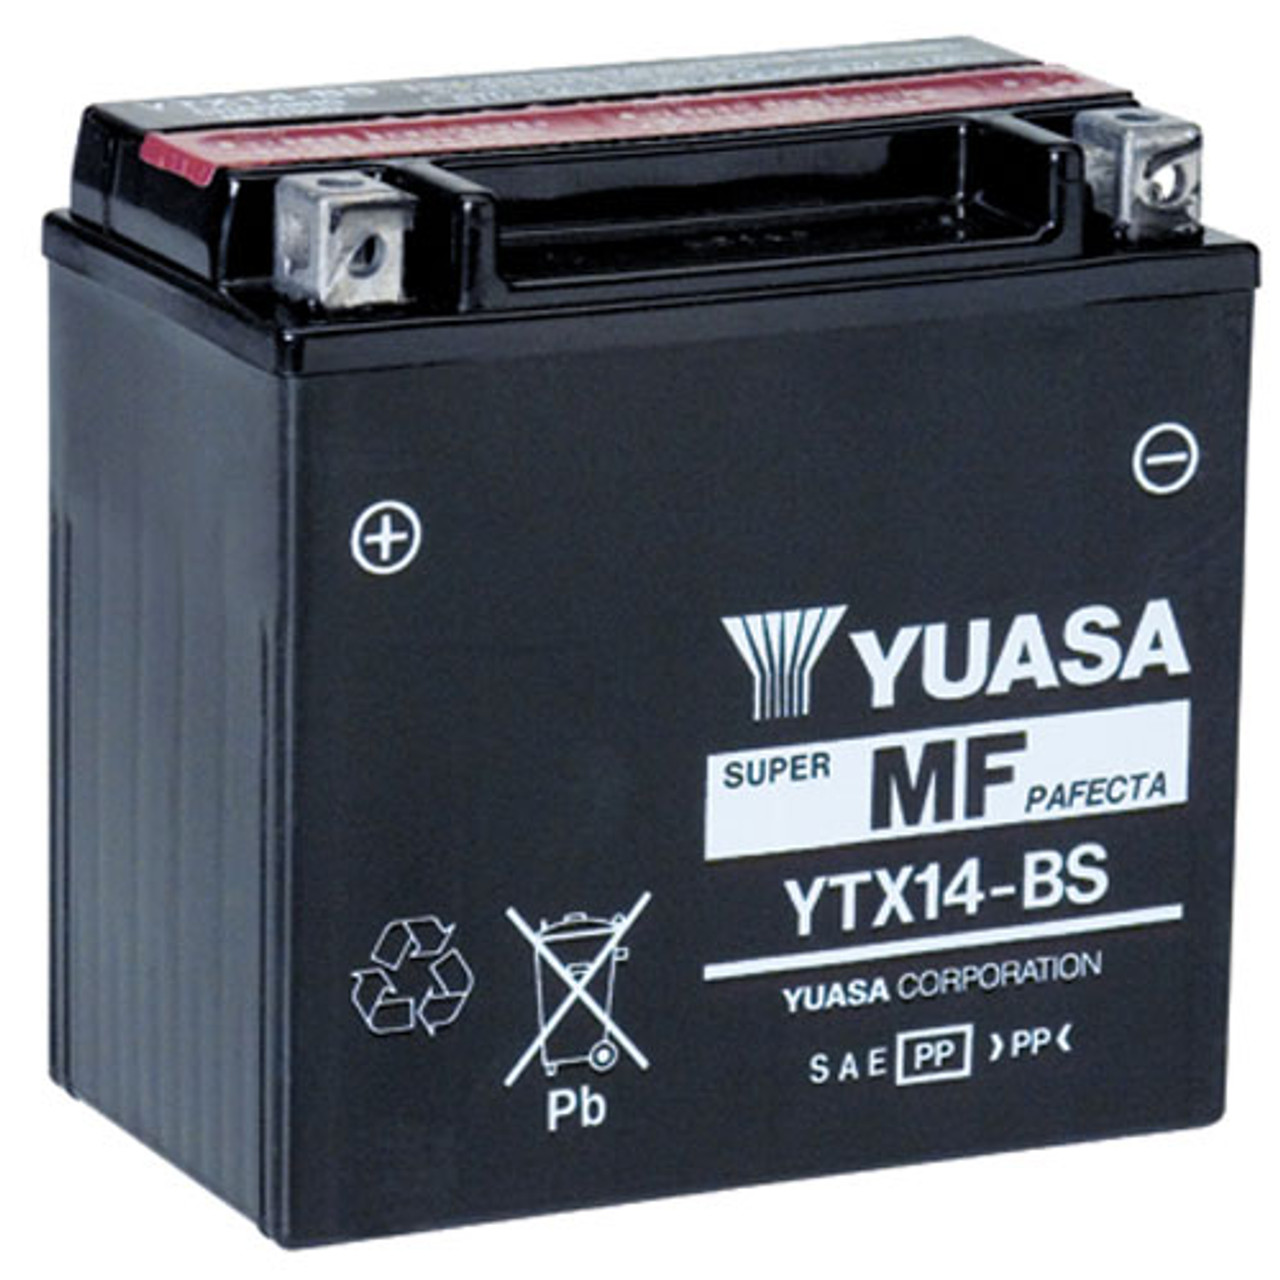 6a7e09f6 Yuasa YTX14-BS 14Ah 200 CCA maintenance-free powersports battery